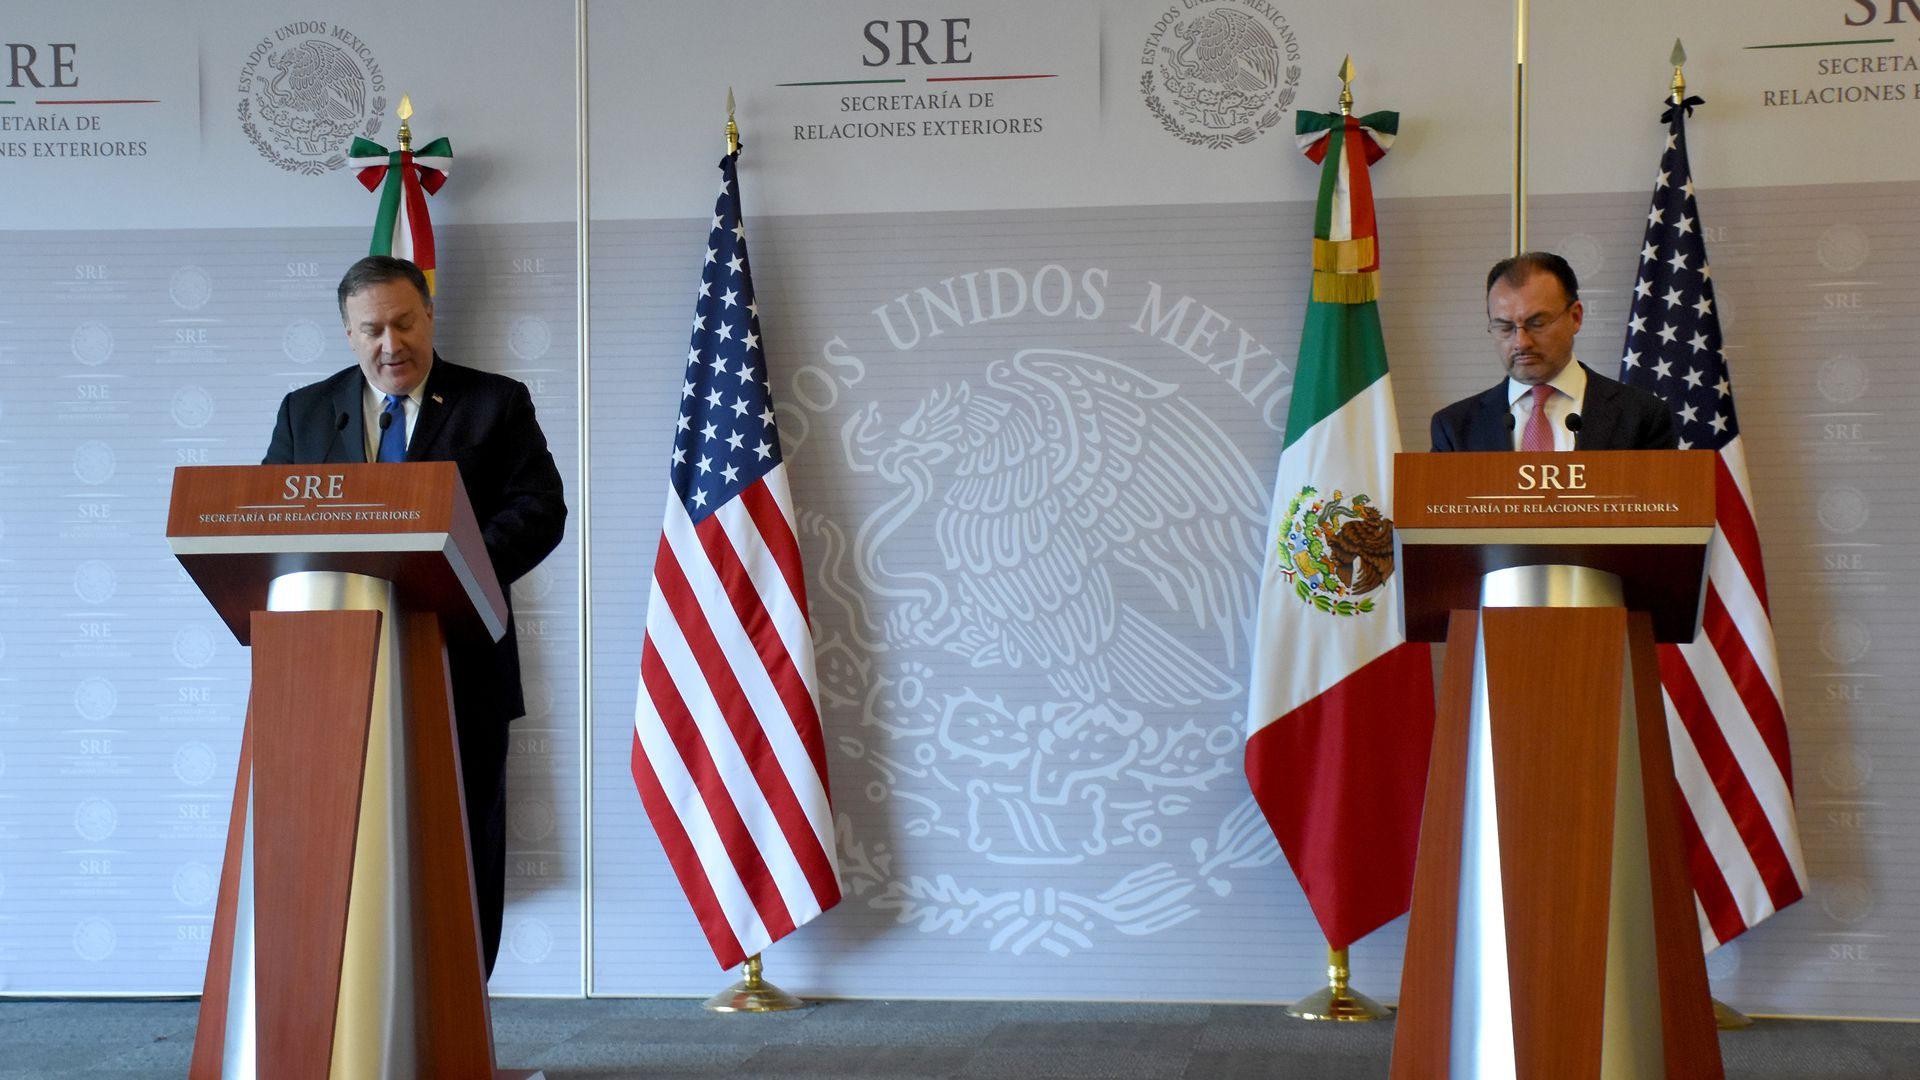 Pompeo and Pena Nieto behind two podiums with Mexican and American flags